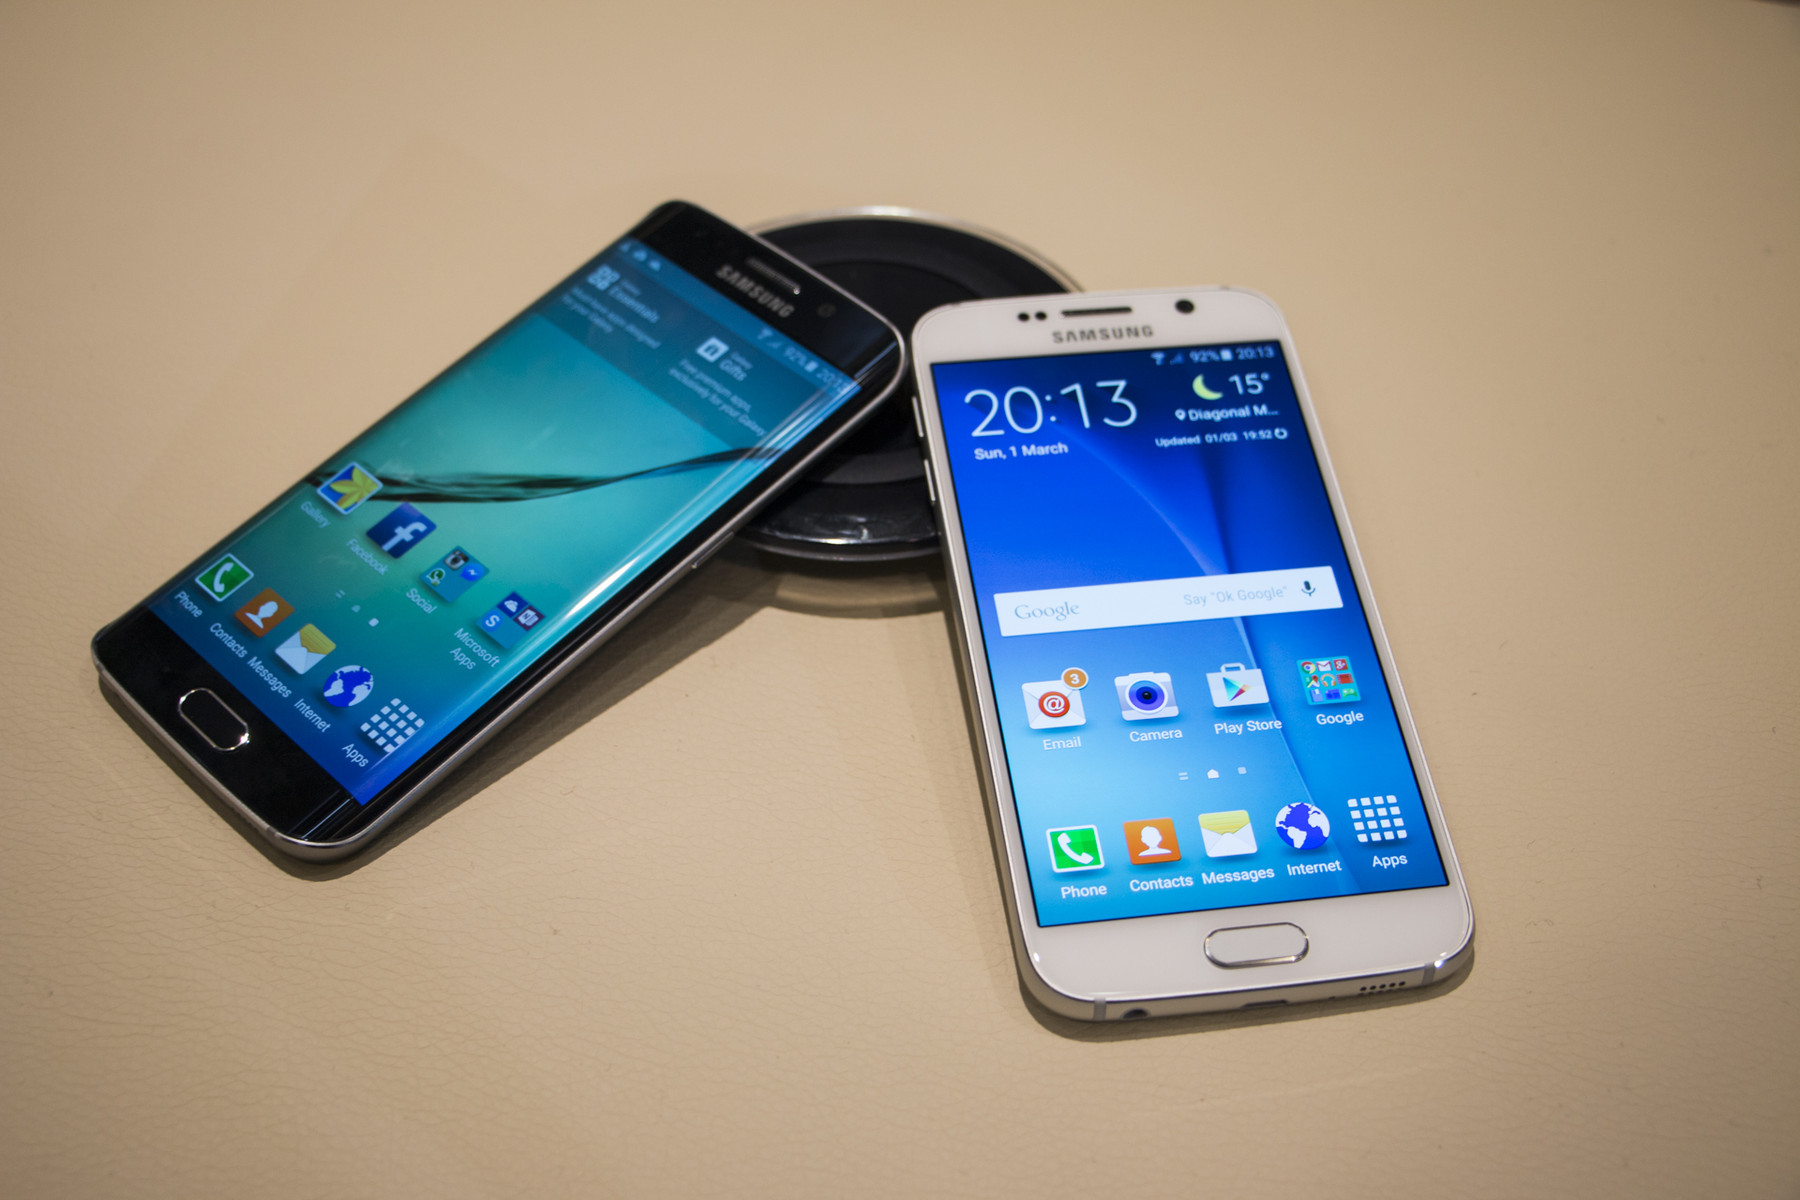 Samsung unveils Galaxy S6 and S6 Edge smartphones - NotebookCheck